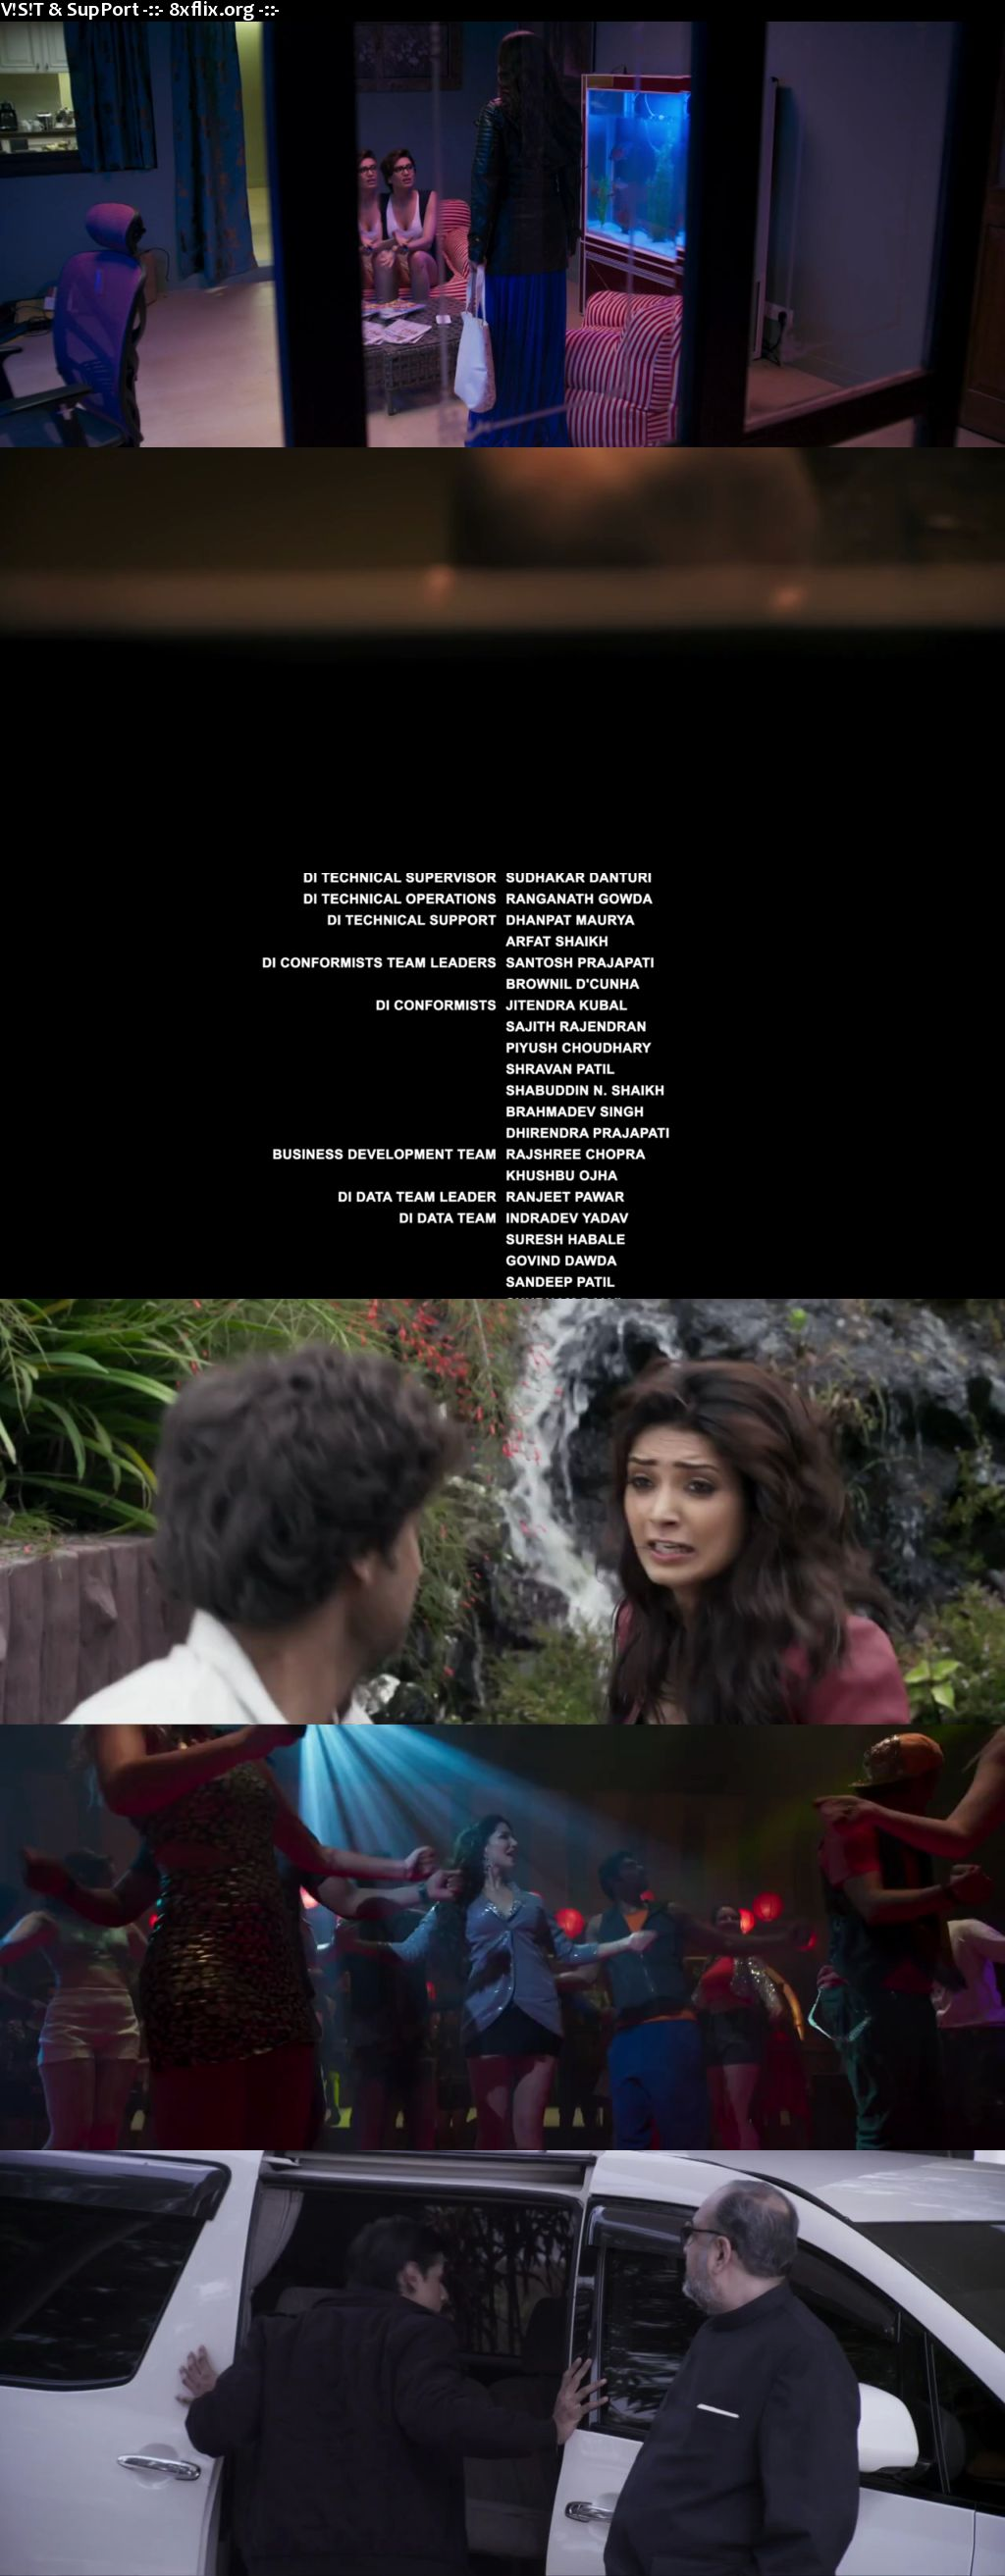 Bullets 2020 S01 Hindi Complete WEB Series 720p 480p WEB-DL